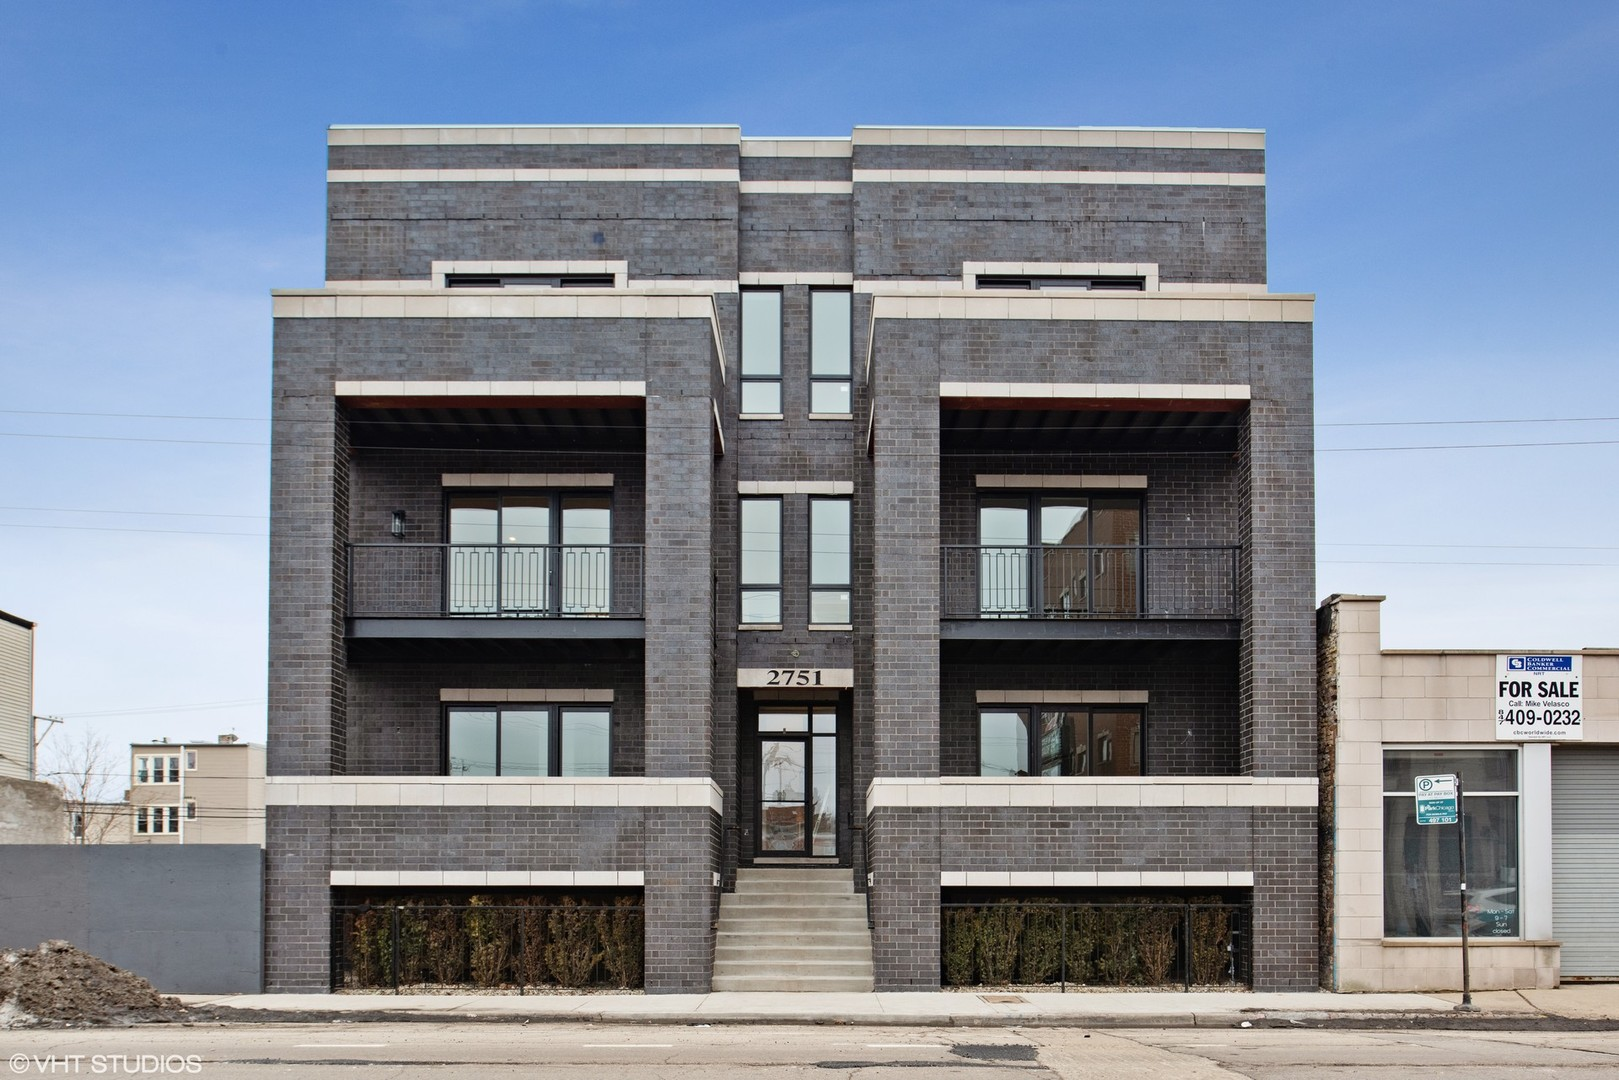 2745 West Lawrence 1W, Chicago, Illinois, 60625